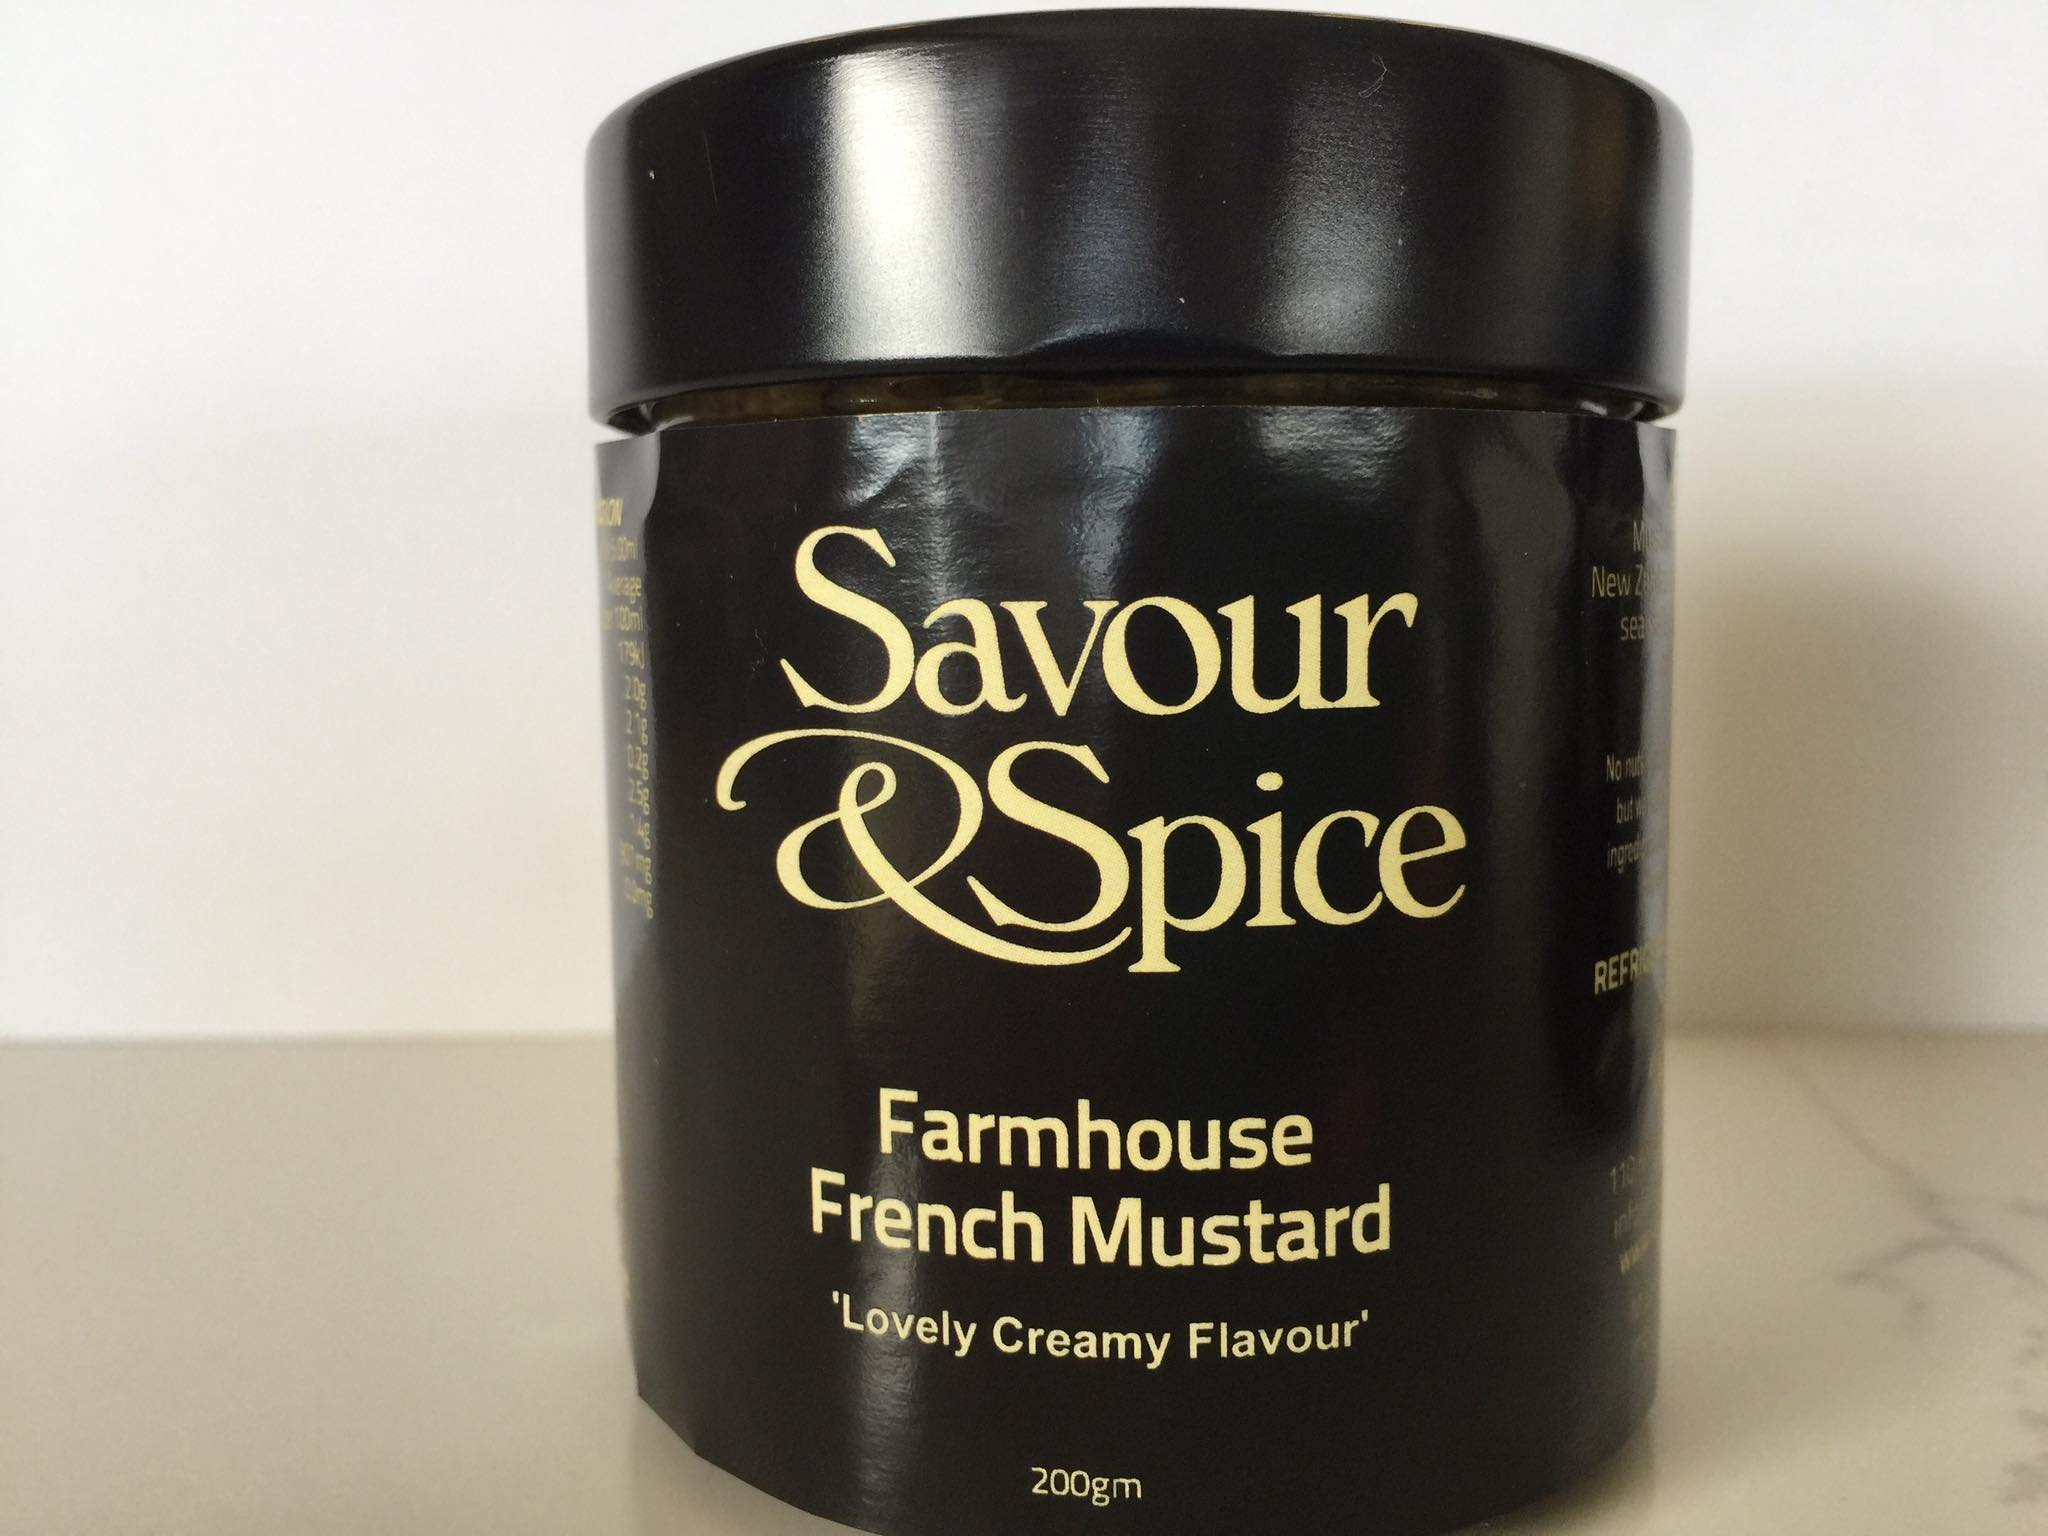 Farmhouse French Mustard